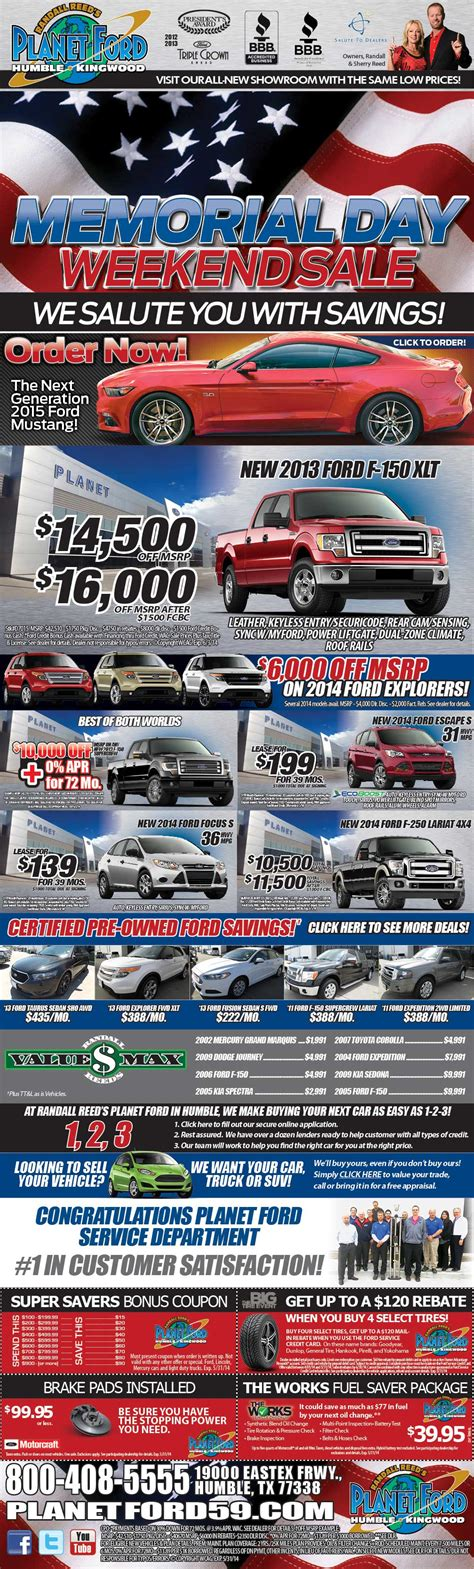 Planet Ford's Memorial Day Weekend Sales Event   Planet